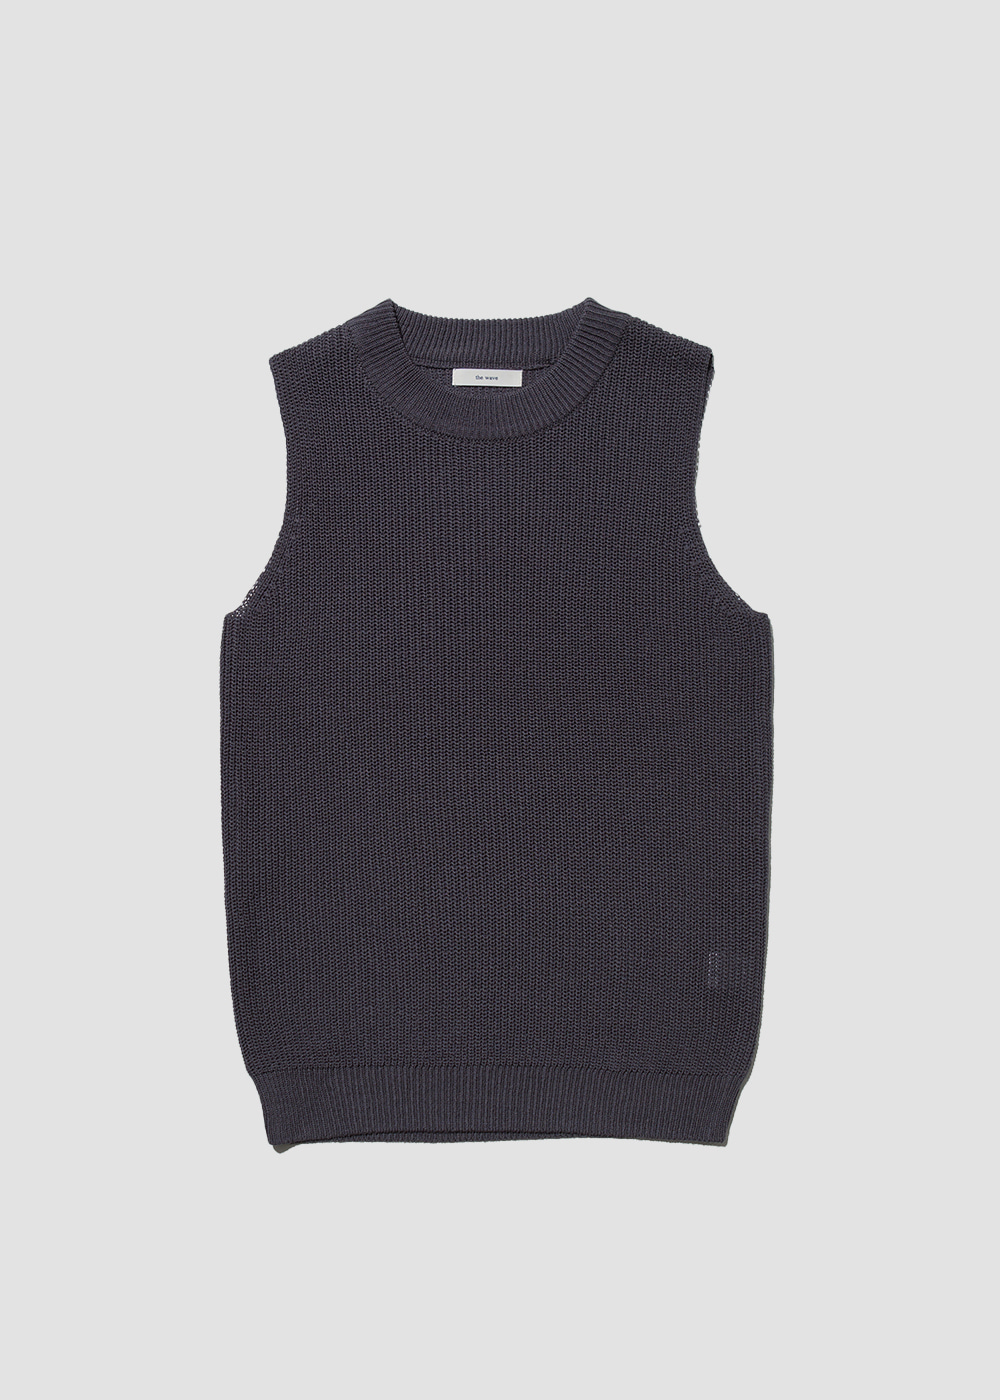 [THE WAVE] Jenner Knit Sleeveless